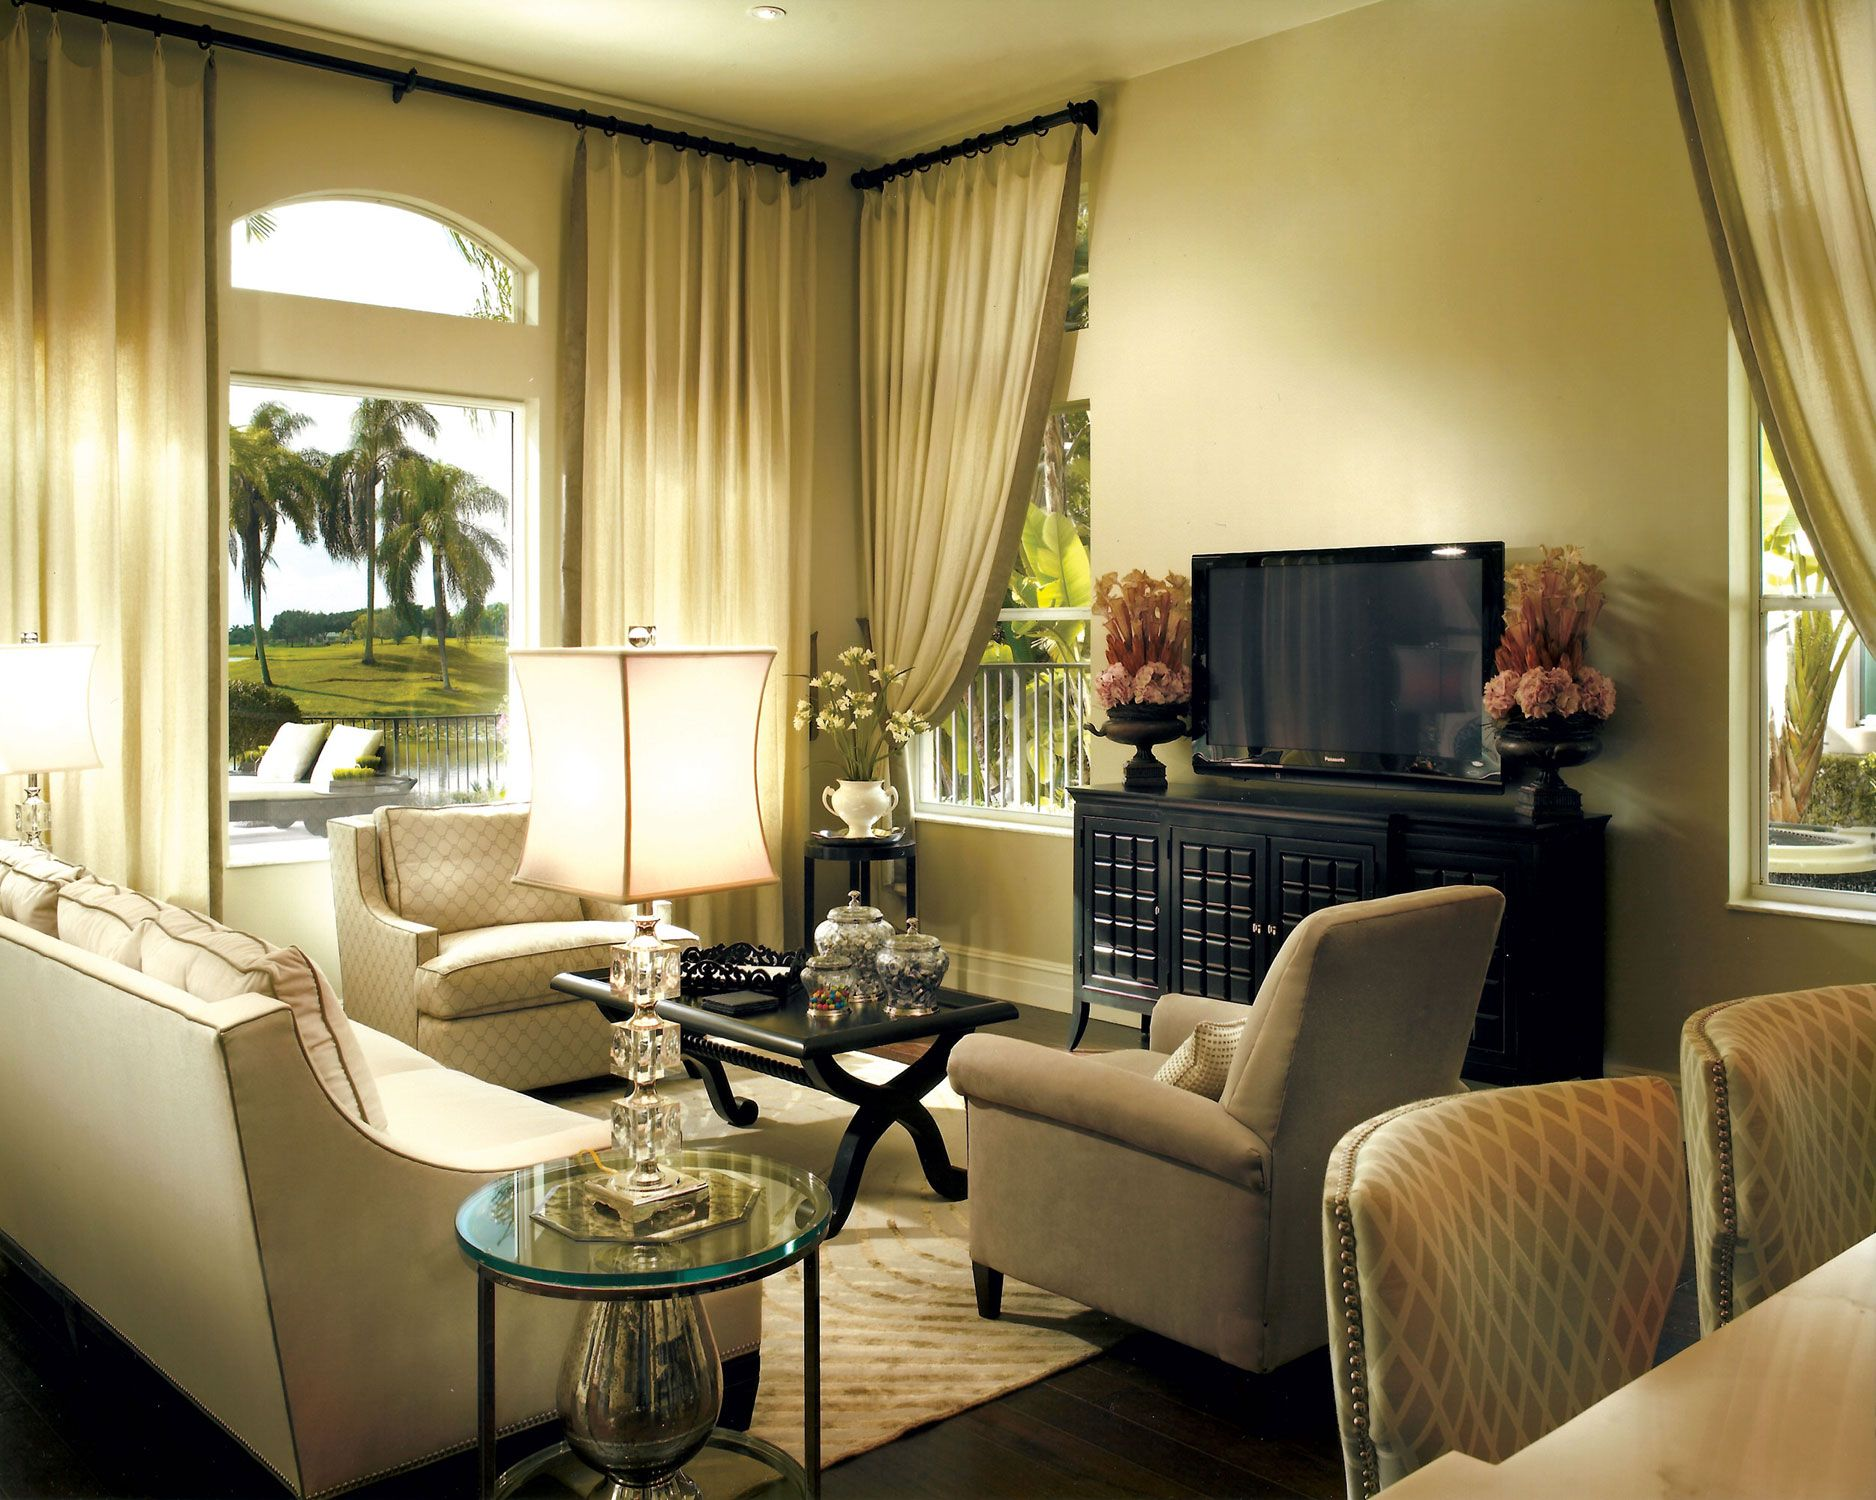 Gentil Interior Designers In Florida. Best Interior Design Projects In Miami.